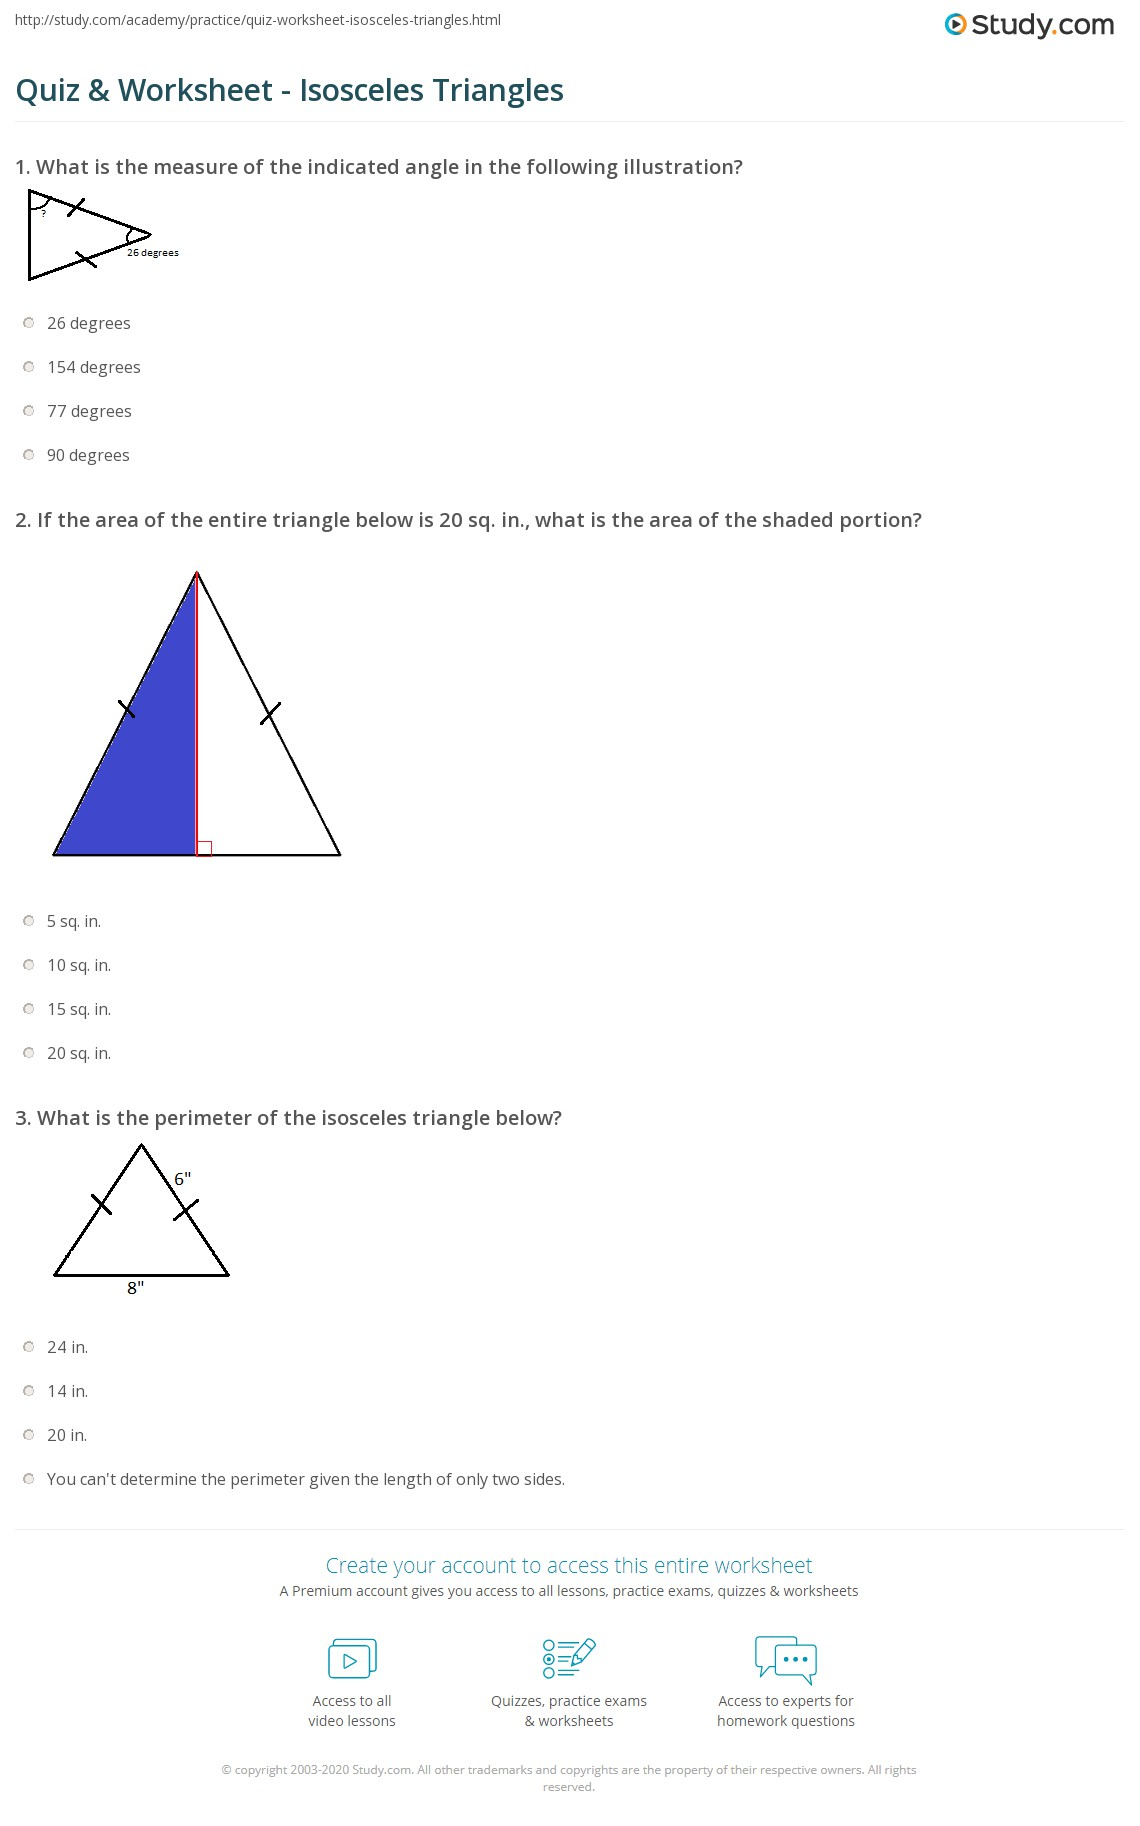 Worksheet Triangle Area Worksheet Grass Fedjp Worksheet